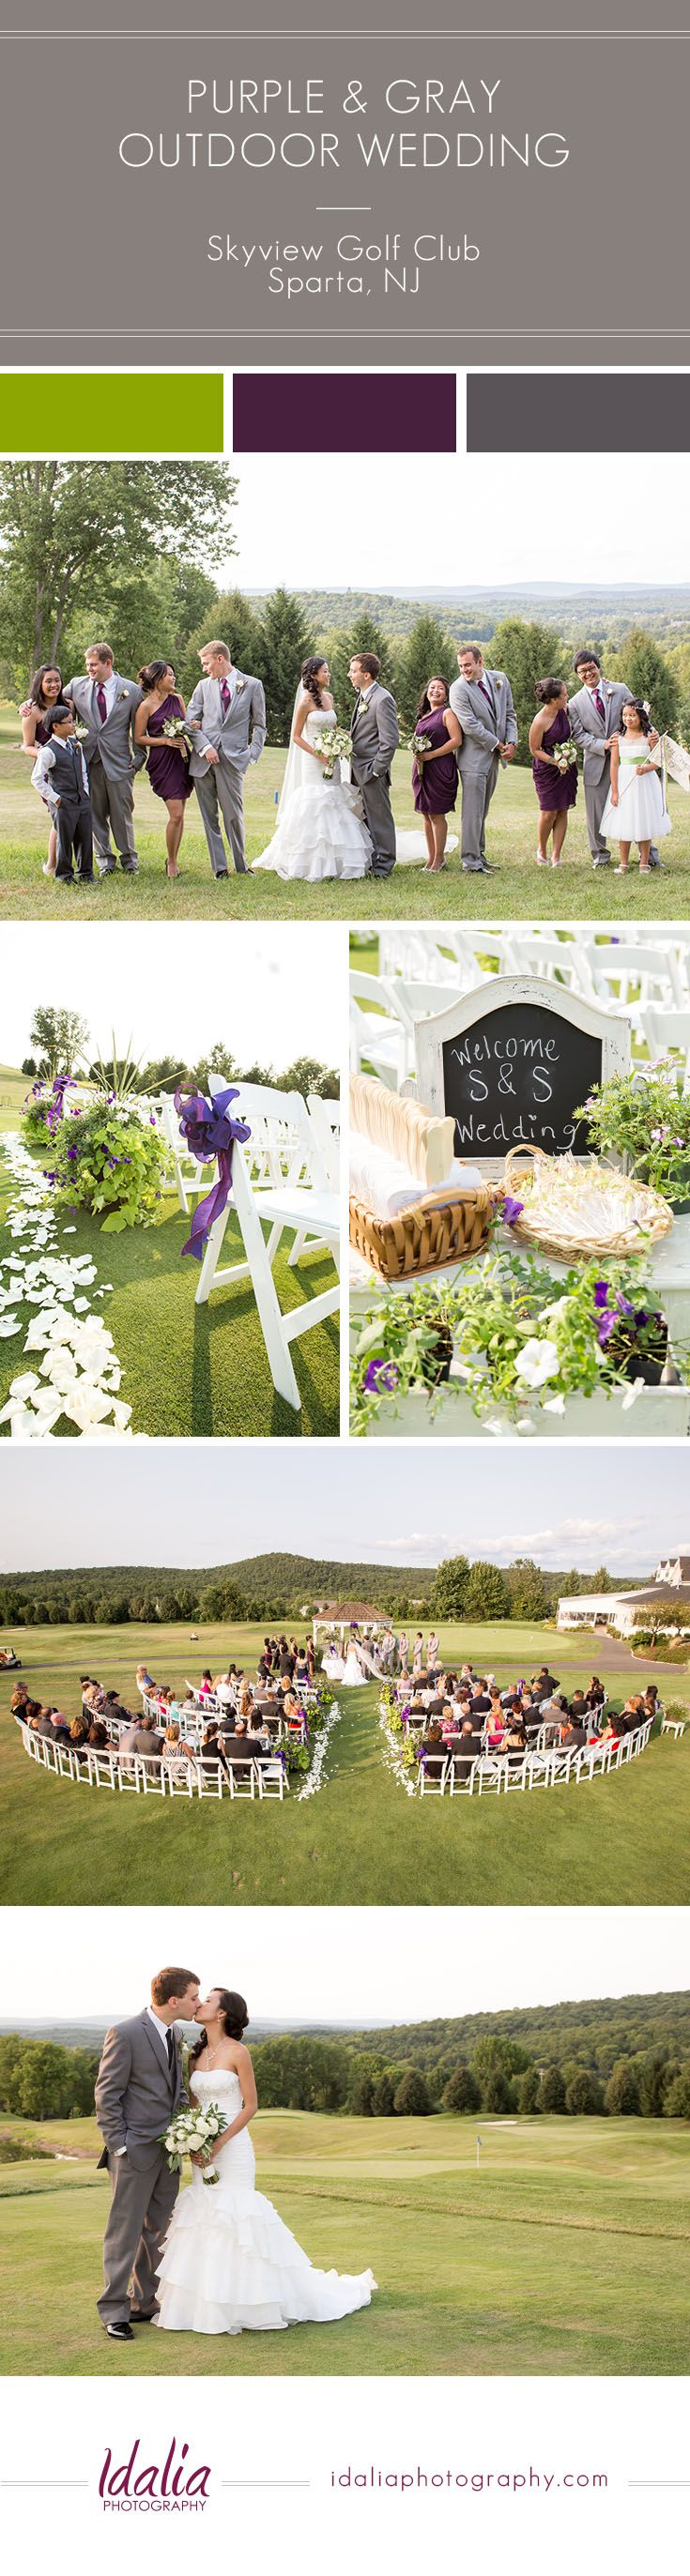 Plum and Gray Outdoor Wedding | Skyview Golf Club Wedding | Sparta, NJ